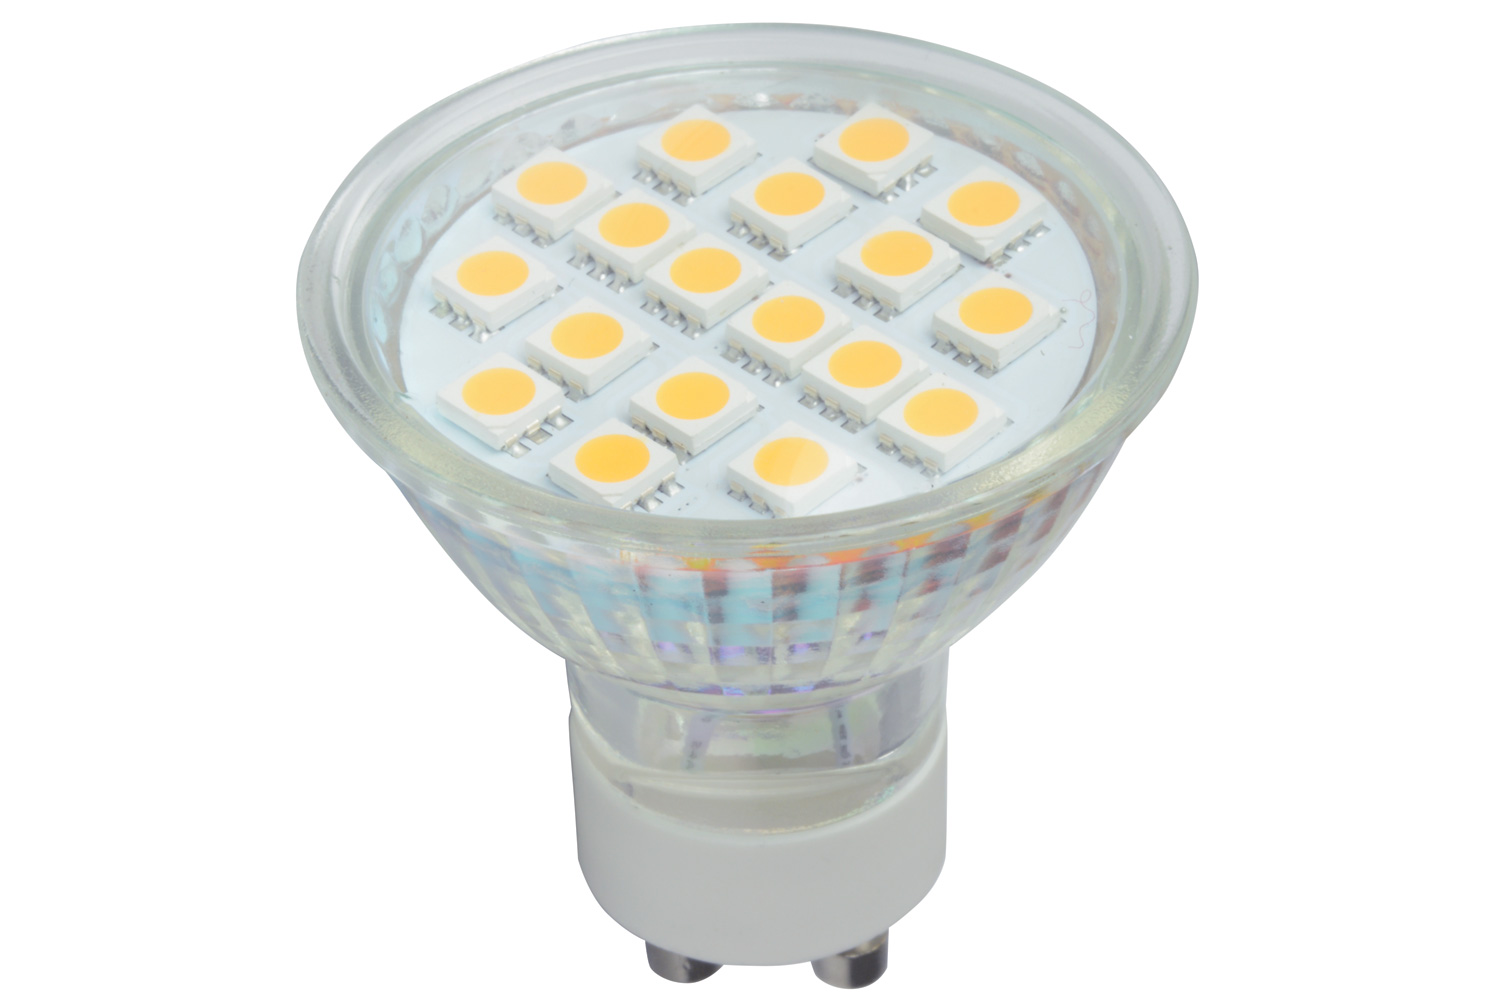 lyyt GU10 18 LED lamp - warm white (3000K)